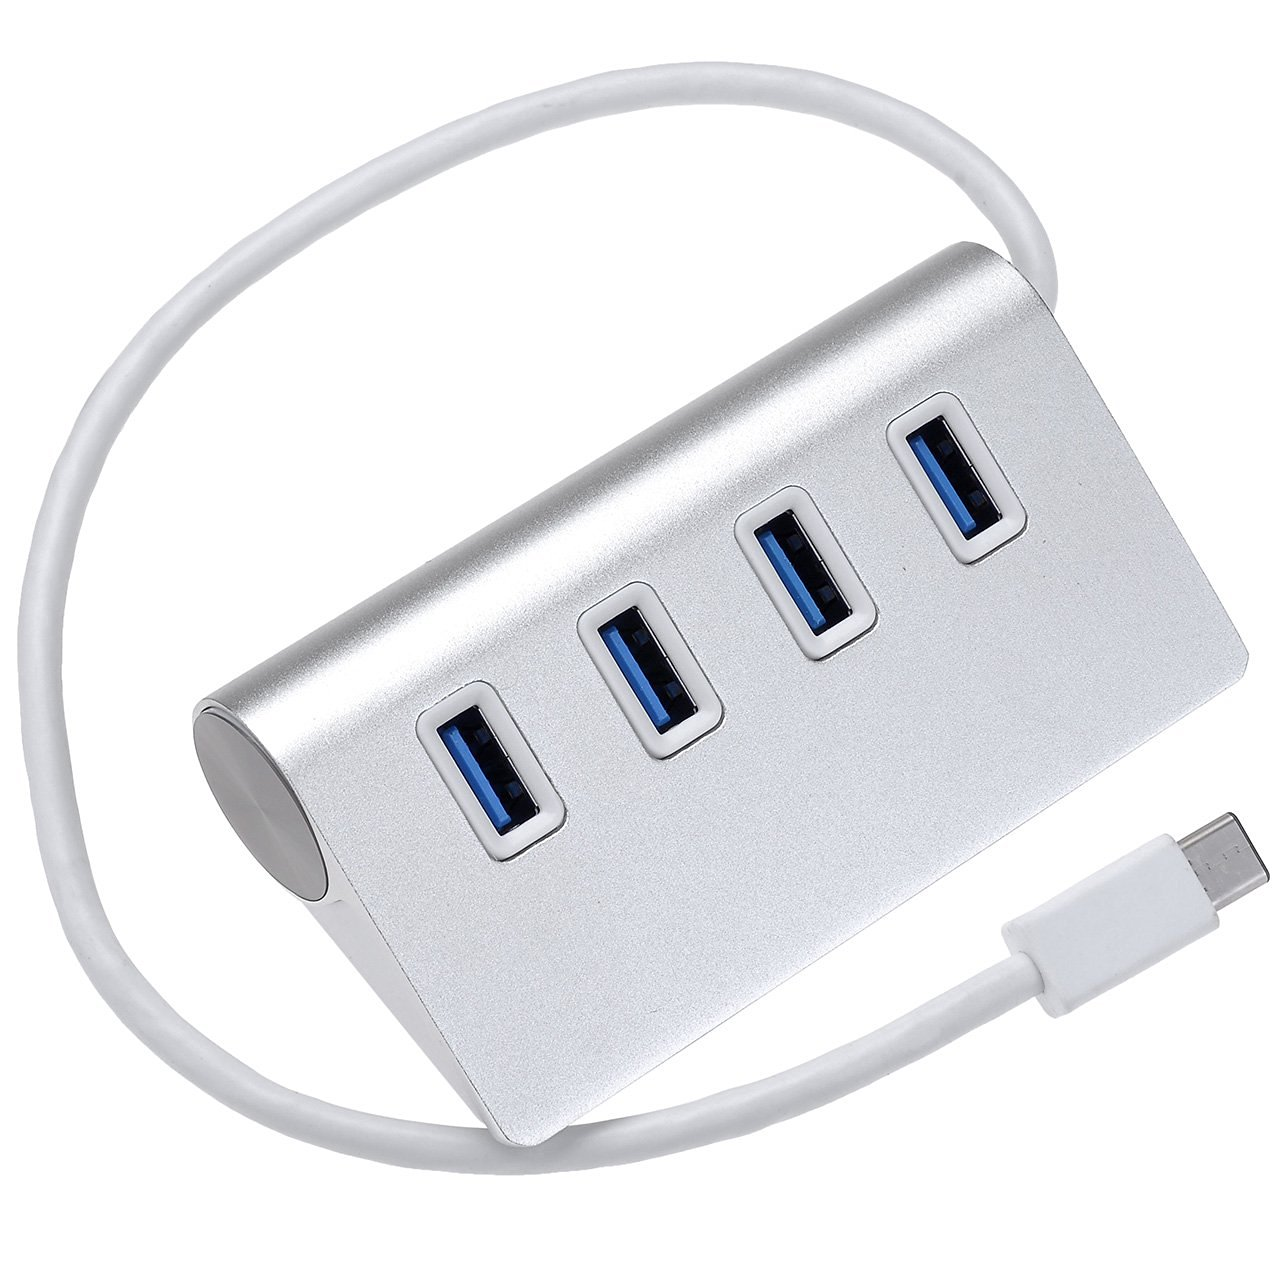 Yerwal USB-C to 4-Port USB 3.0 Hub for USB Type-C Devices,MacBook, ChromeBook Pixel (Silver Aluminum)